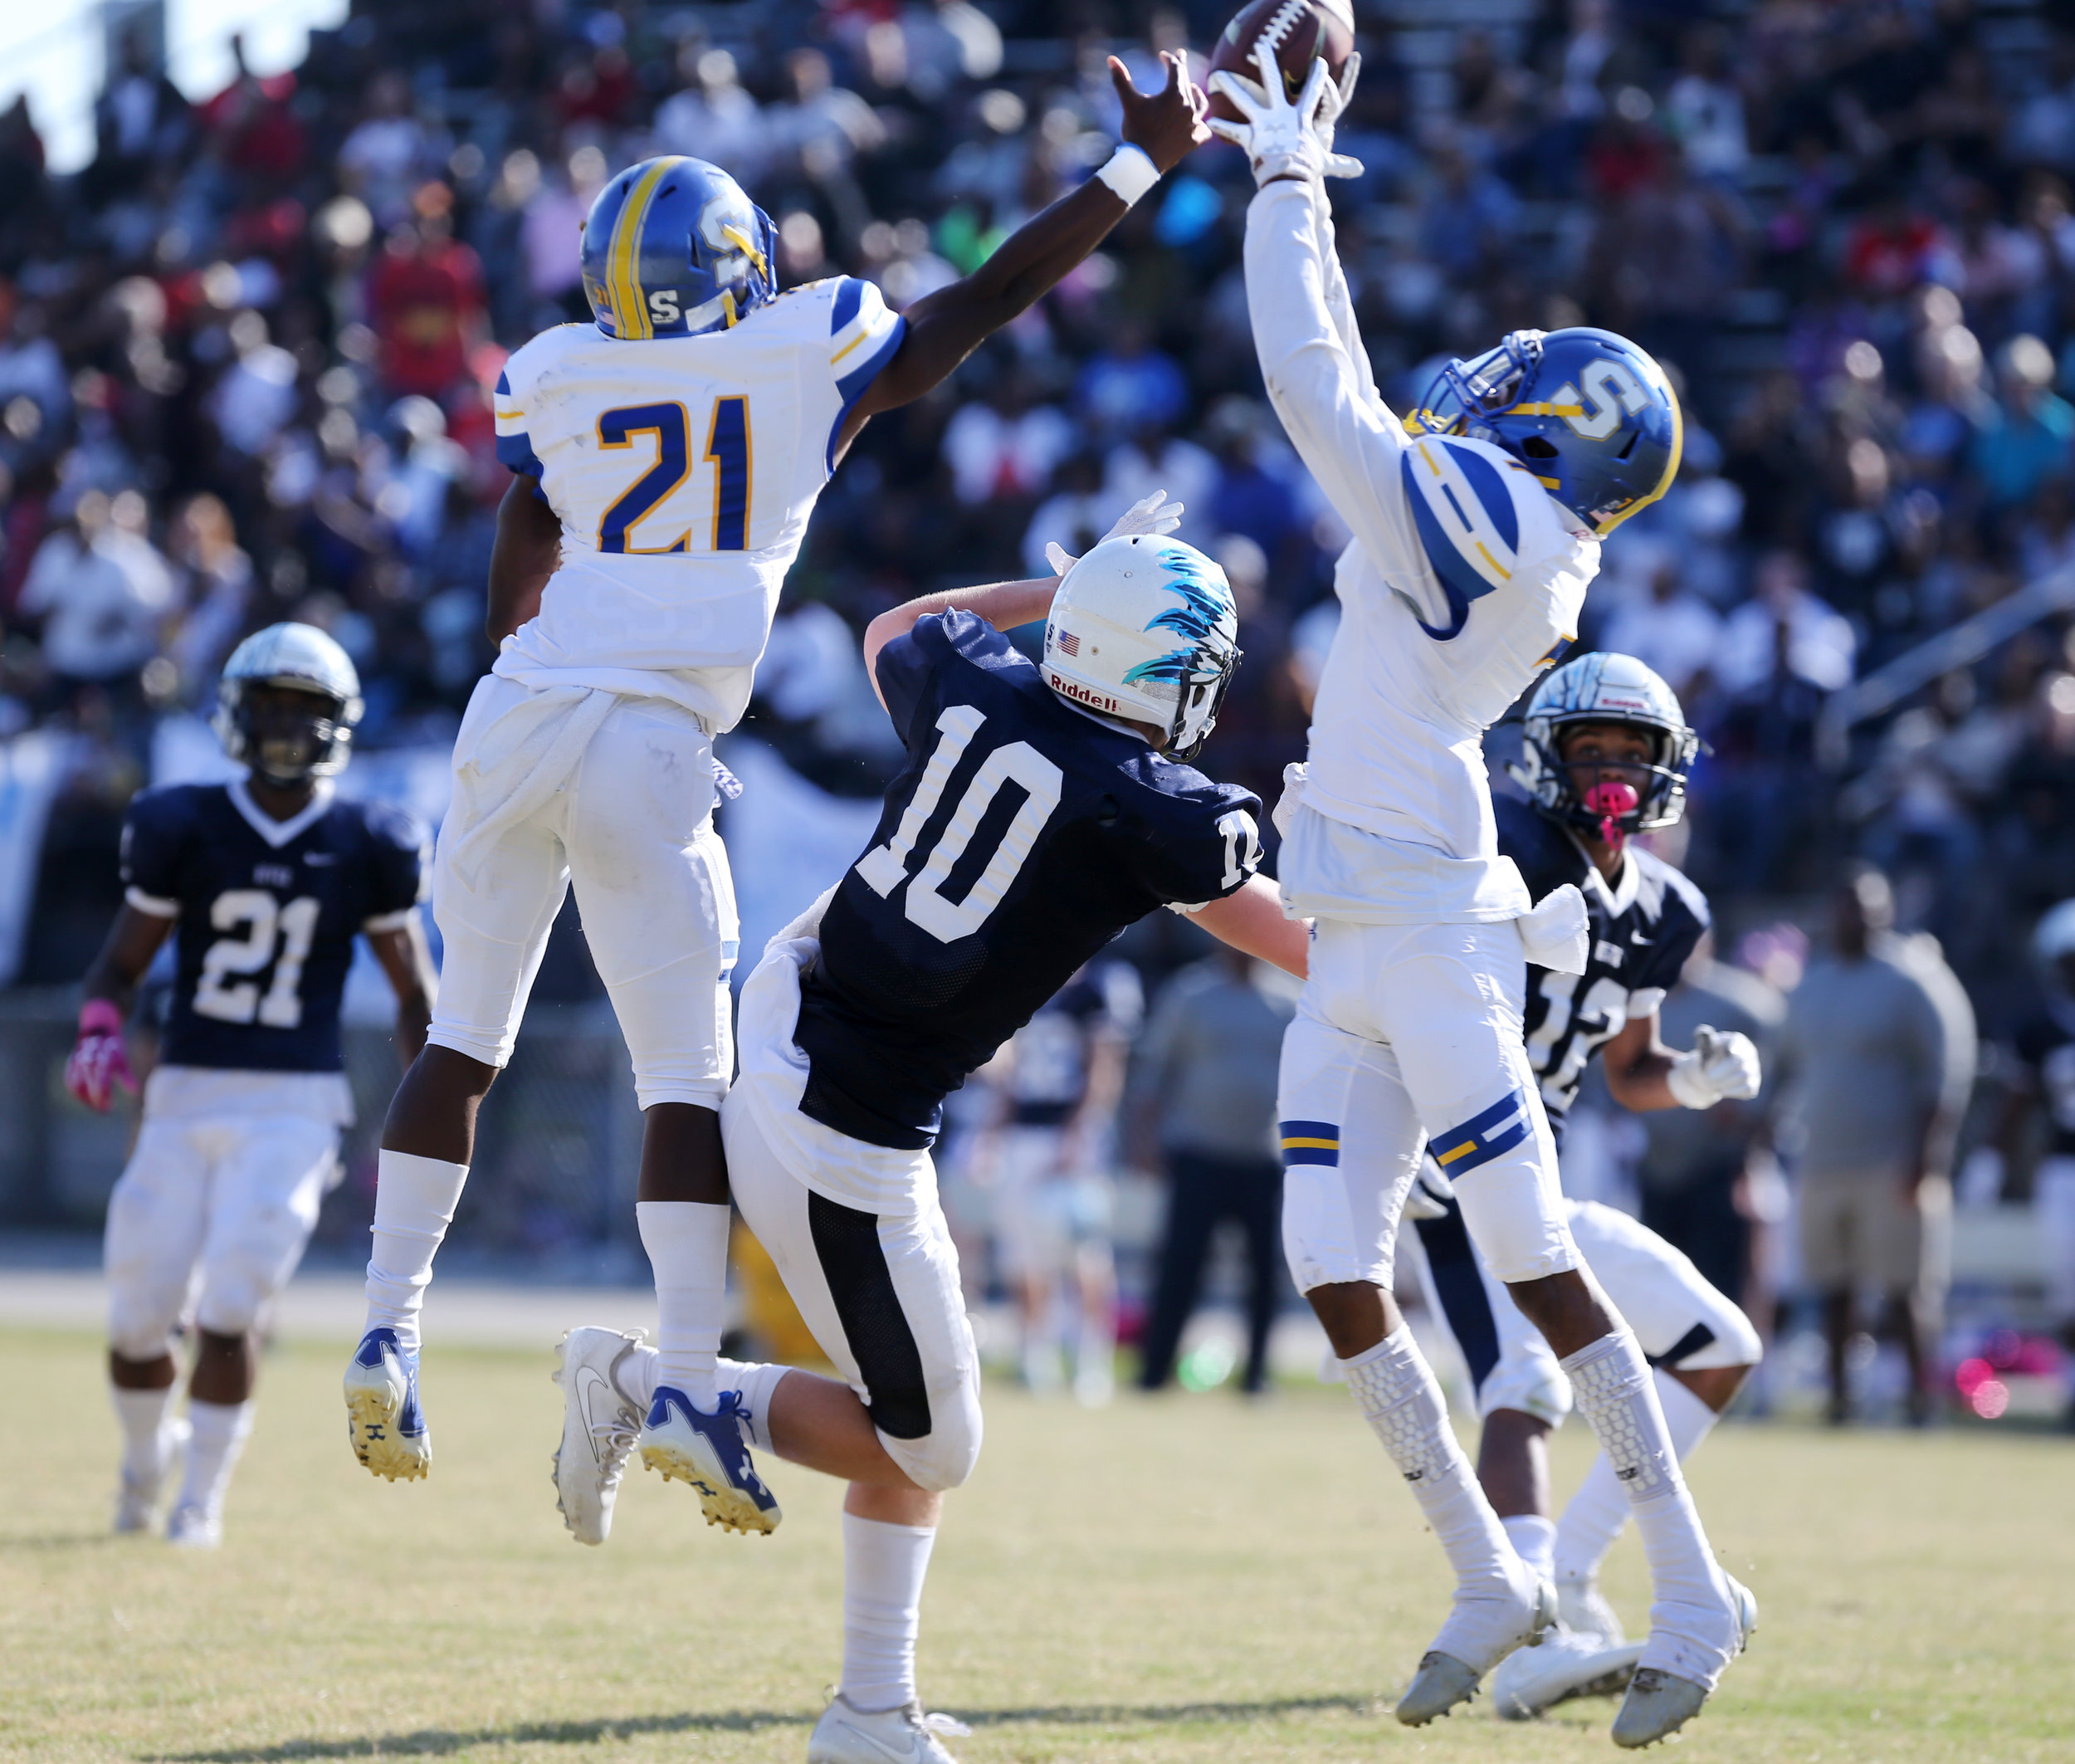 Oscar Smith's Jaylen Todd, right, picks off a pass intended for Indian River's Dylan Hammond, center, but the play was called back due to a penalty and the Braves would score on the ensuing play during the Tigers' 35-14 win, Saturday, Oct. 21, 2017 at Indian River High School in Chesapeake.